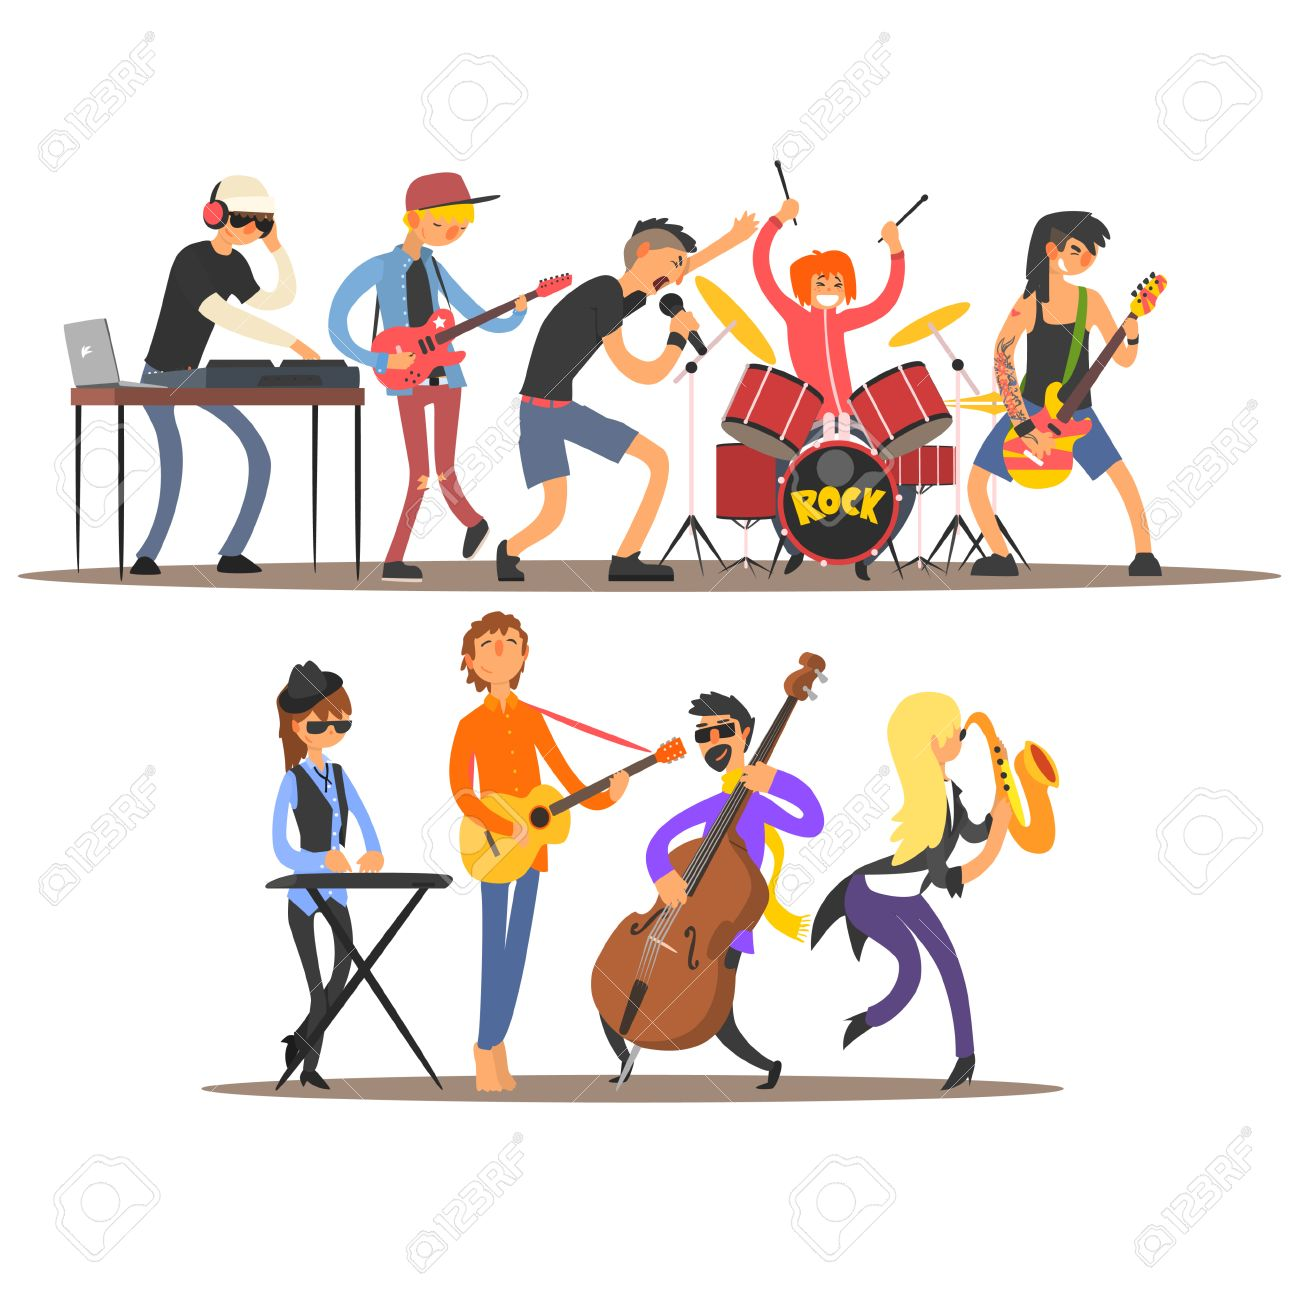 Musicians and Mucical Instruments. Flat Vector Illustration - 52427211